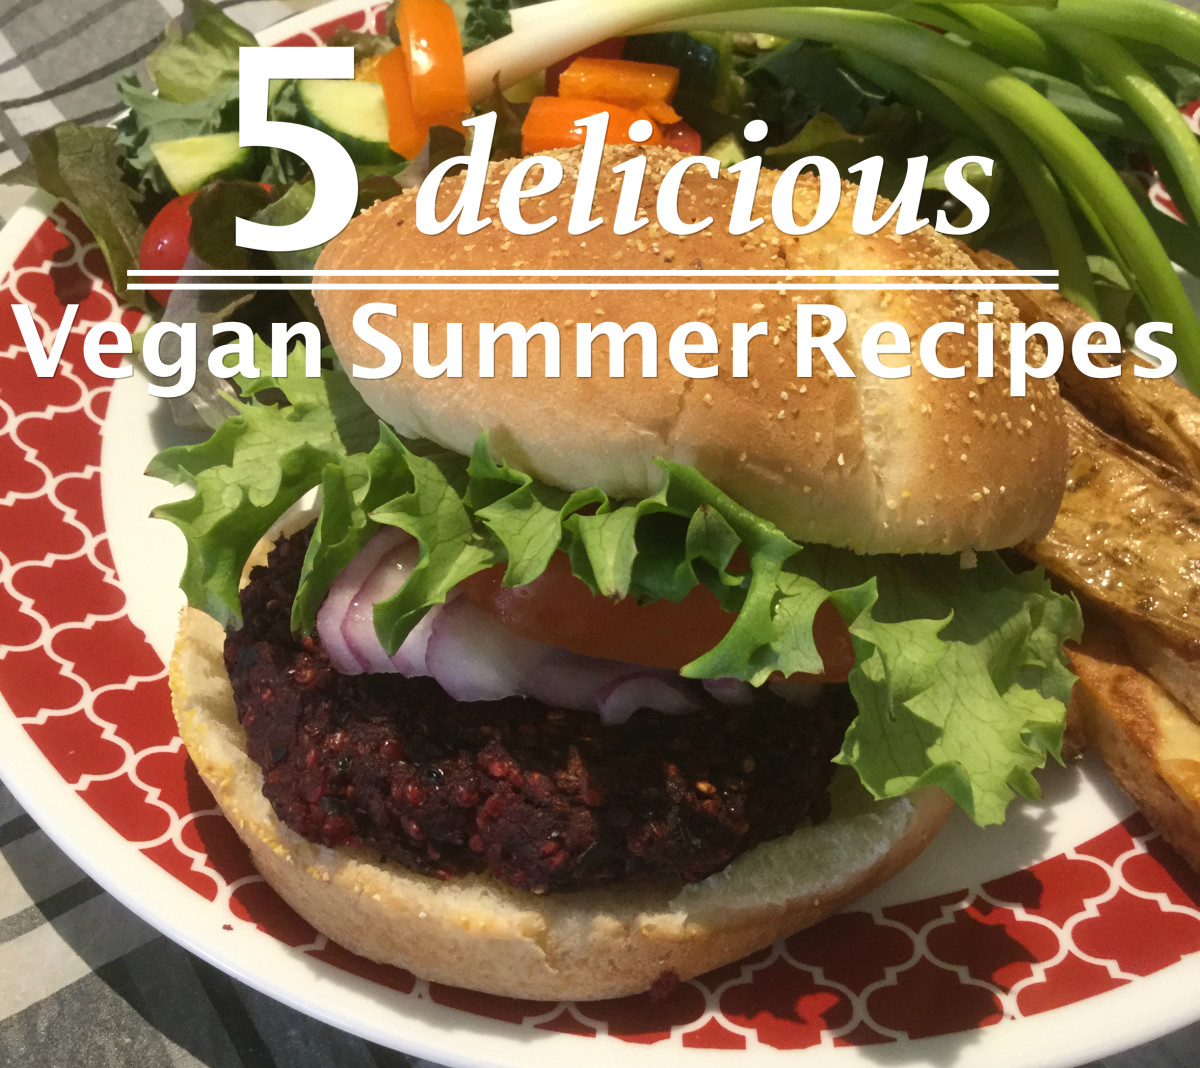 Top 5 Easy Vegan Summer Recipes: From Carrot Dogs to Cookies